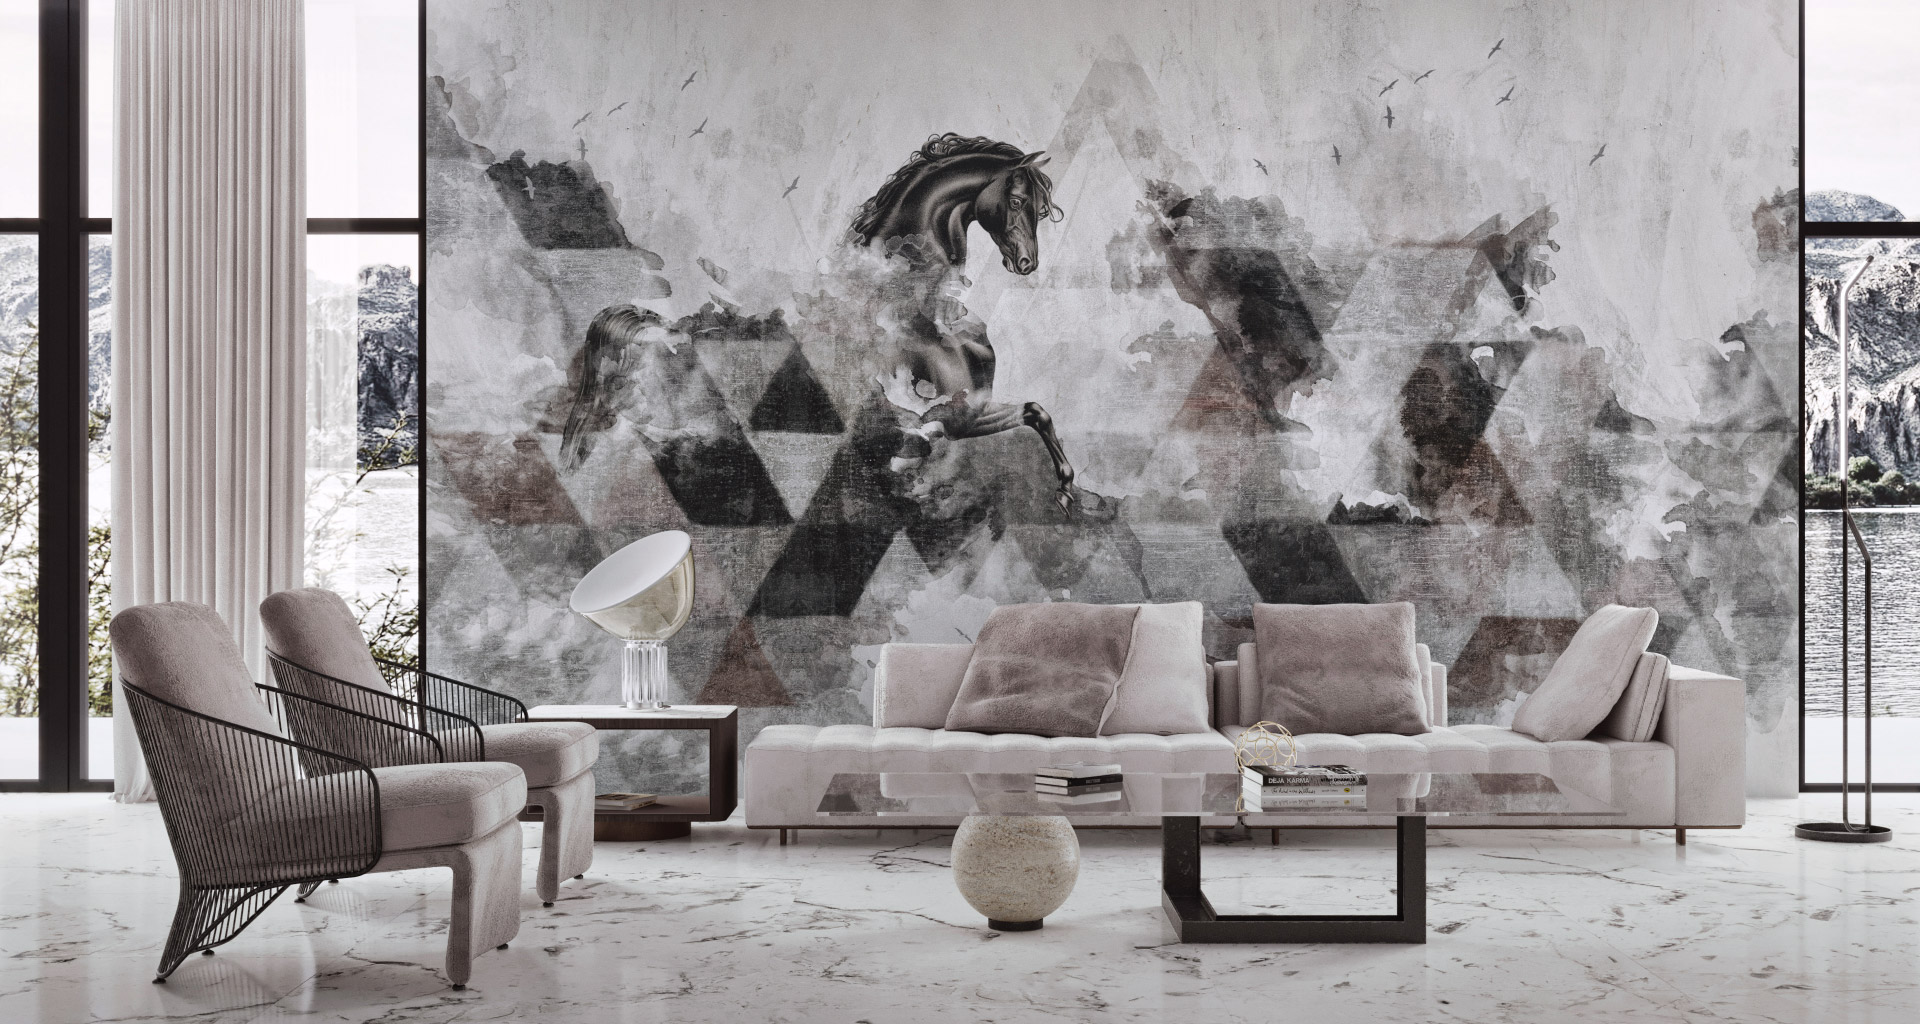 Idea Murale contemporary wallpapers in a custom size